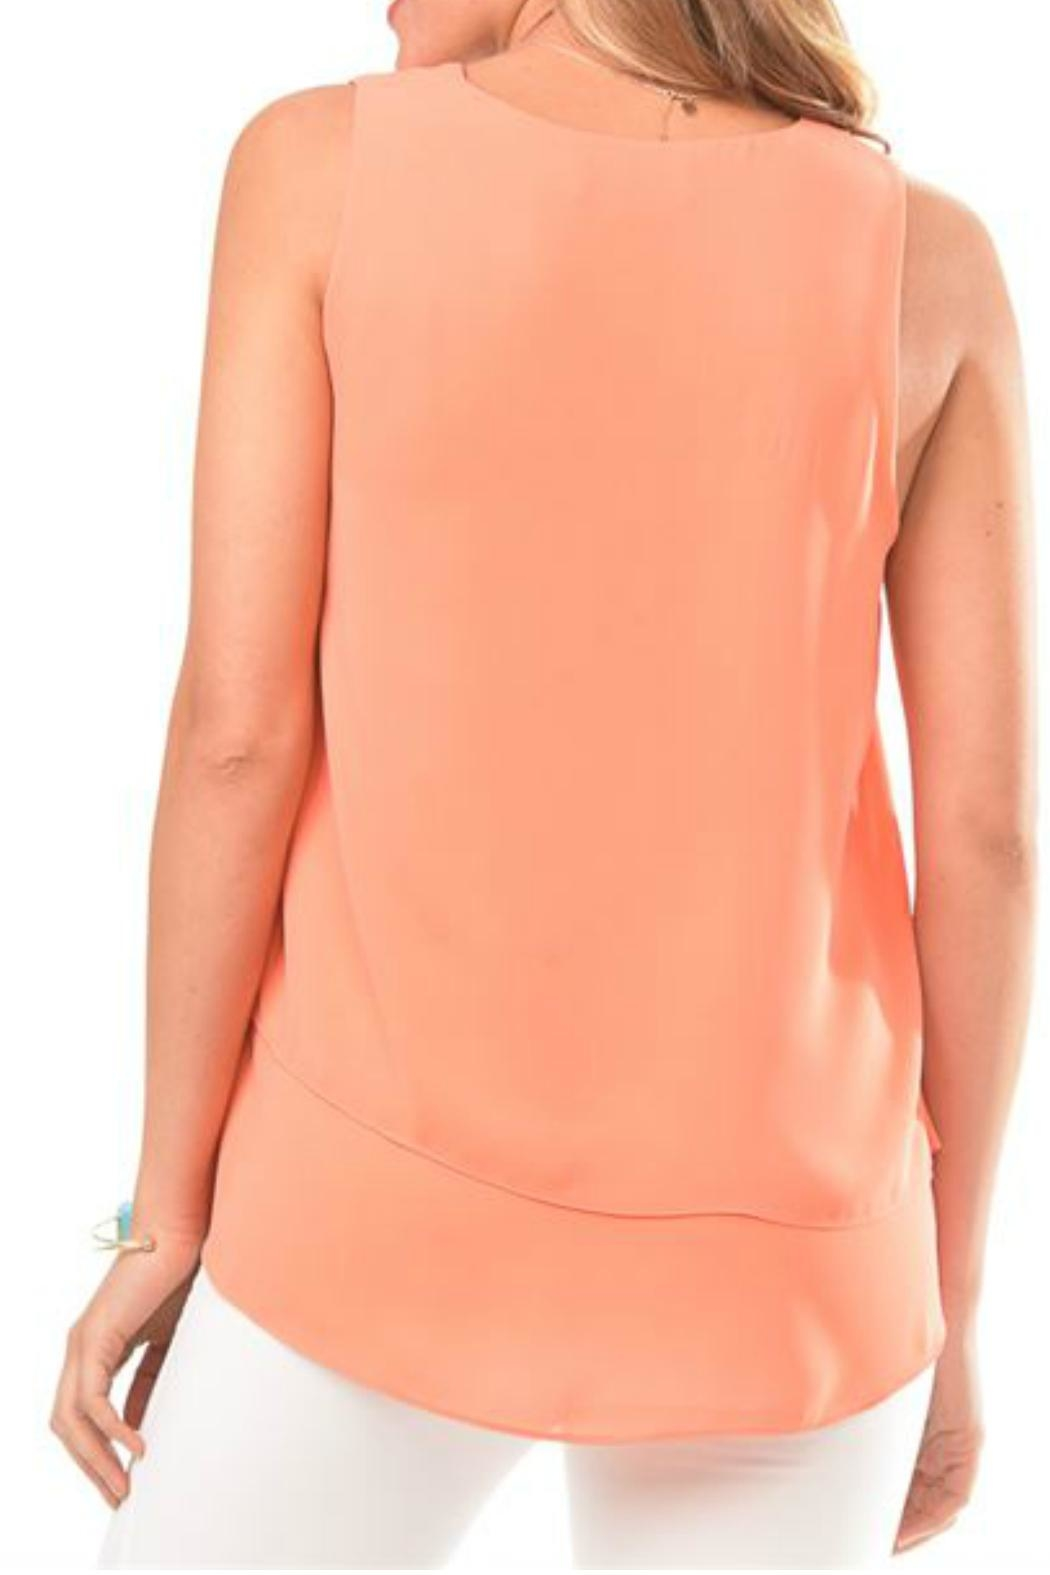 Charlie Paige Asymmetrical Chiffon Top - Front Full Image